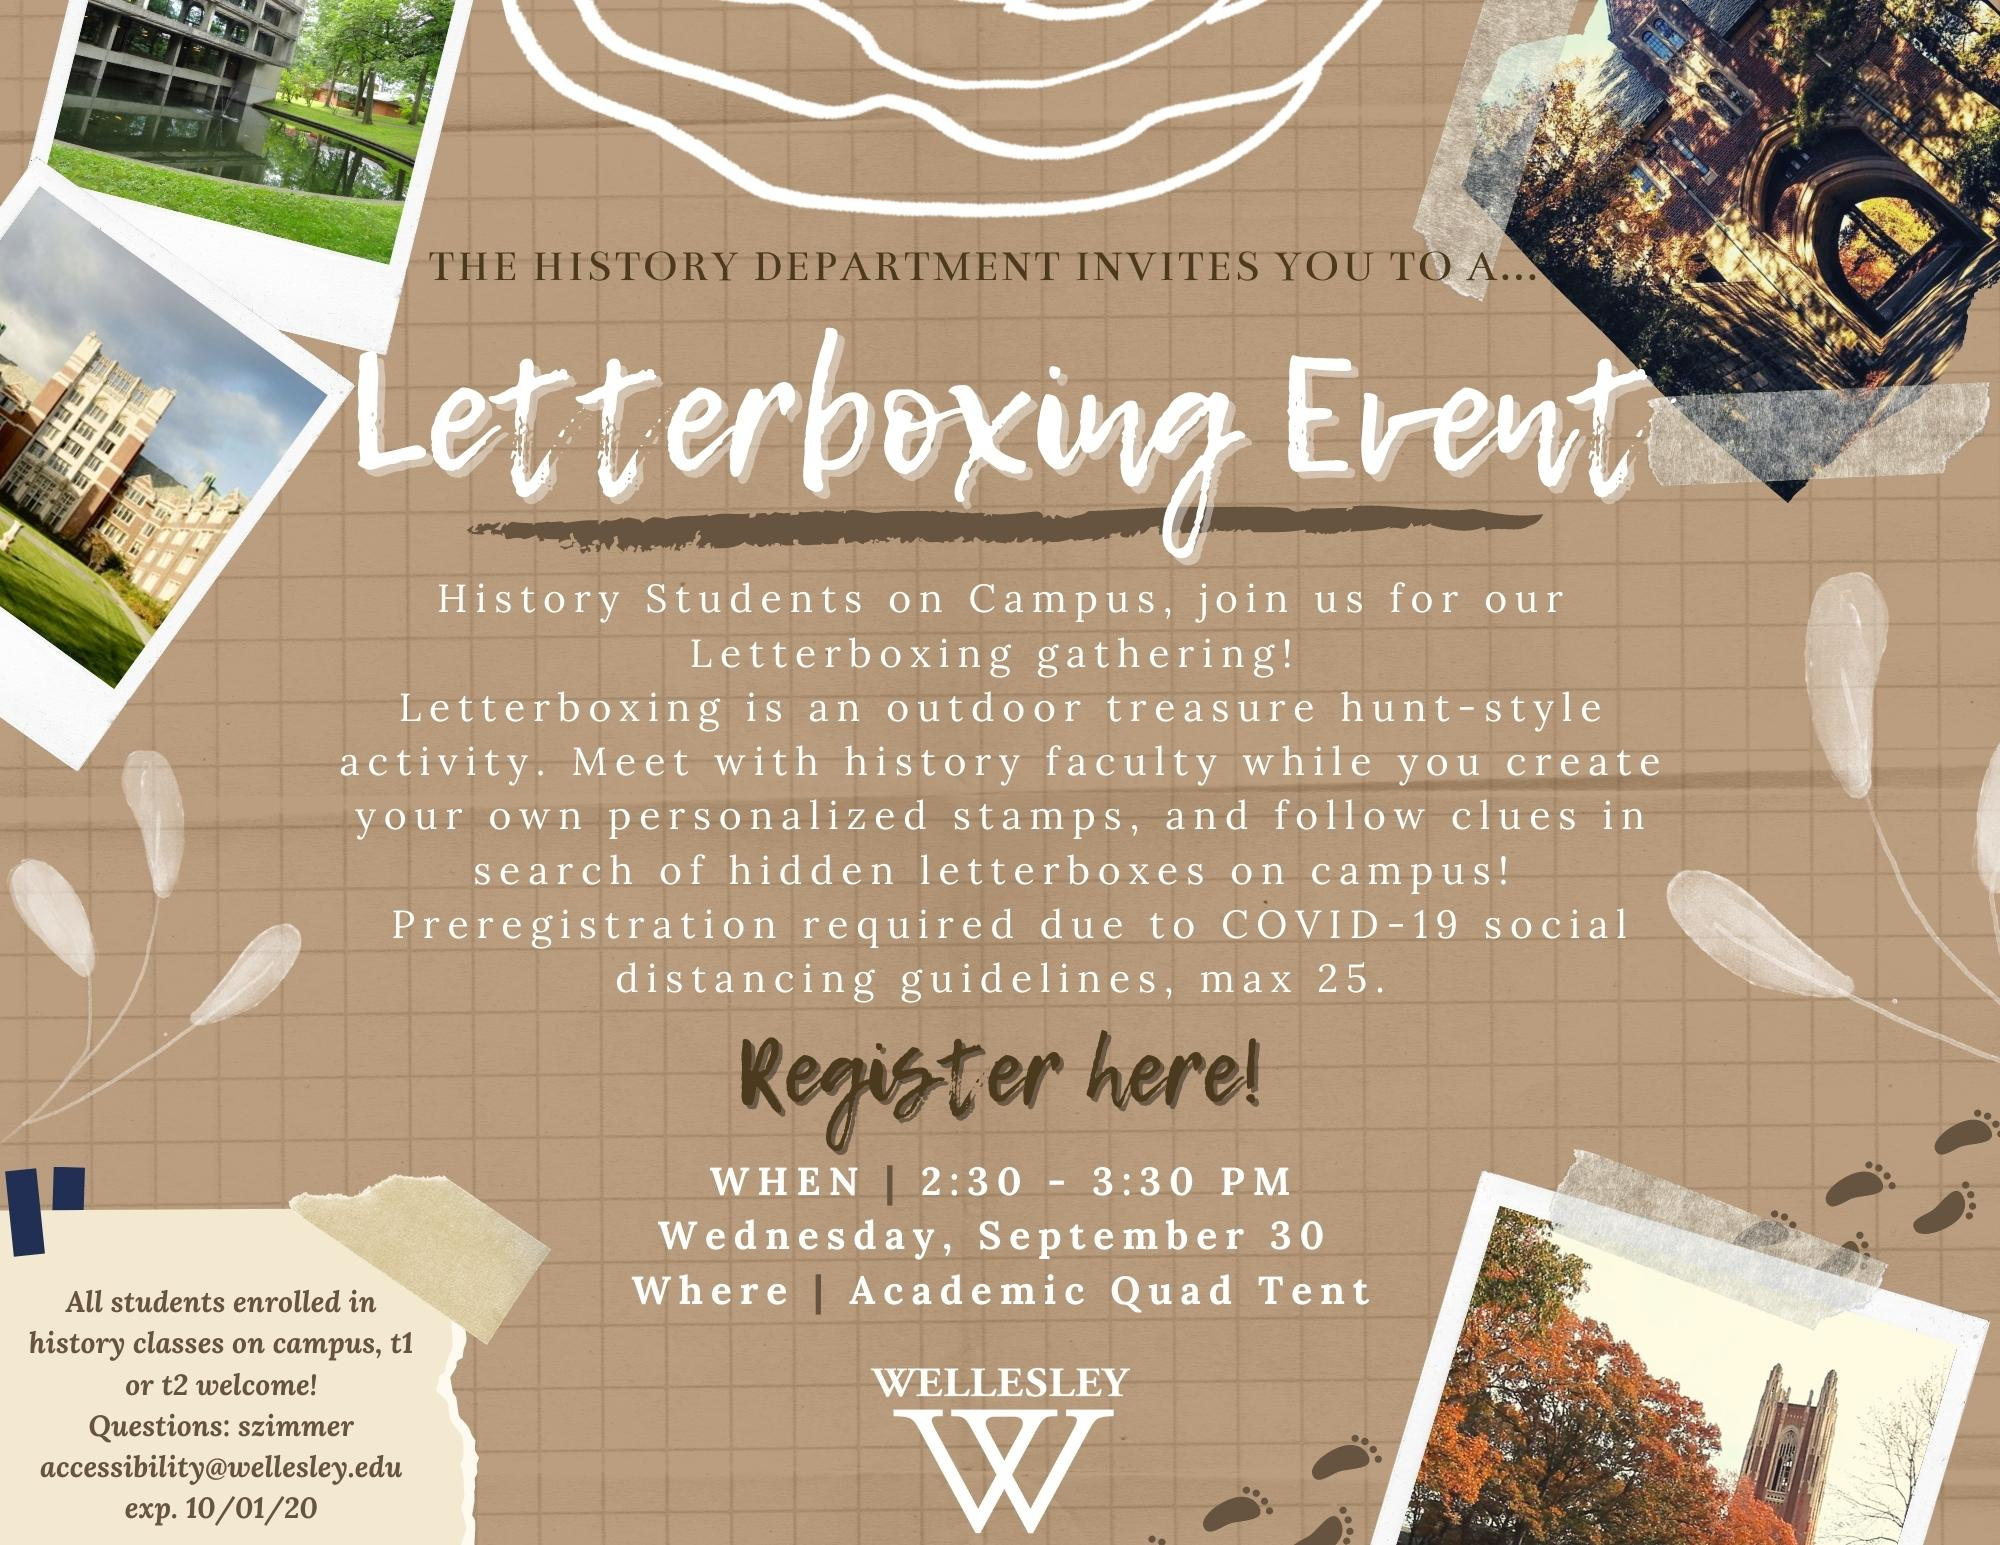 Letterboxing event